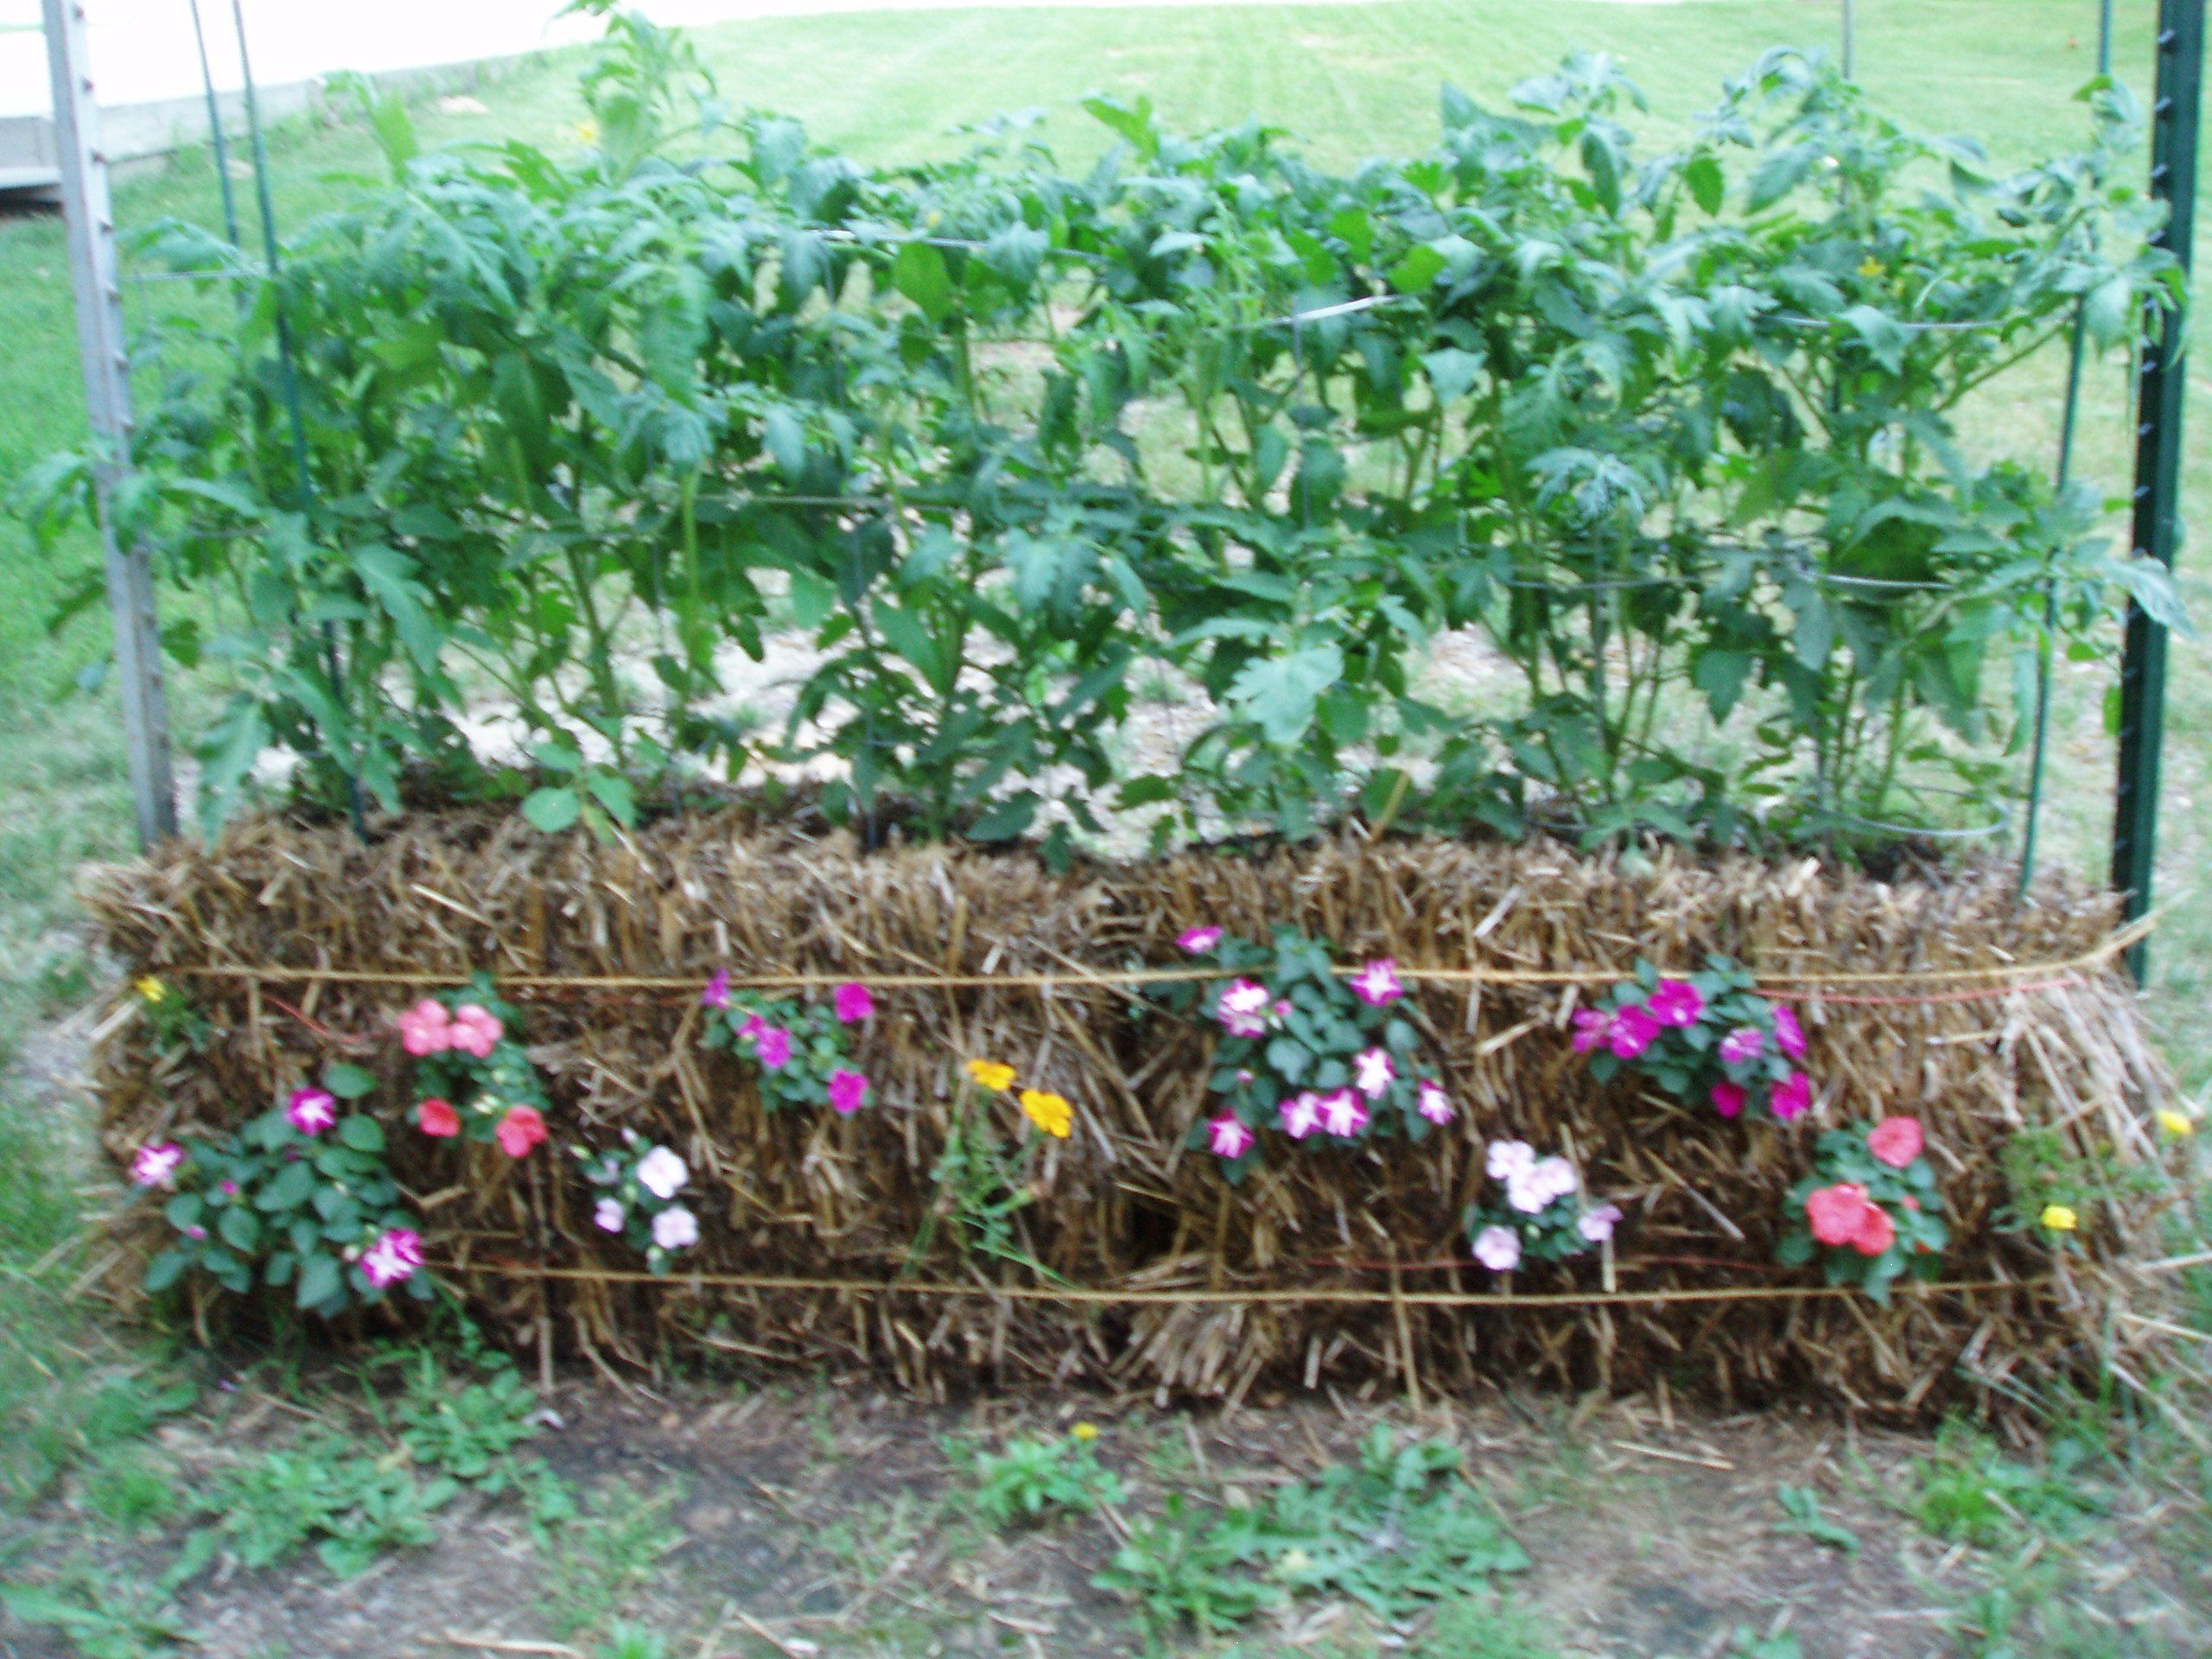 The Science Of Straw Bale Gardening With Joel Karsten Straw Bales And Gardens